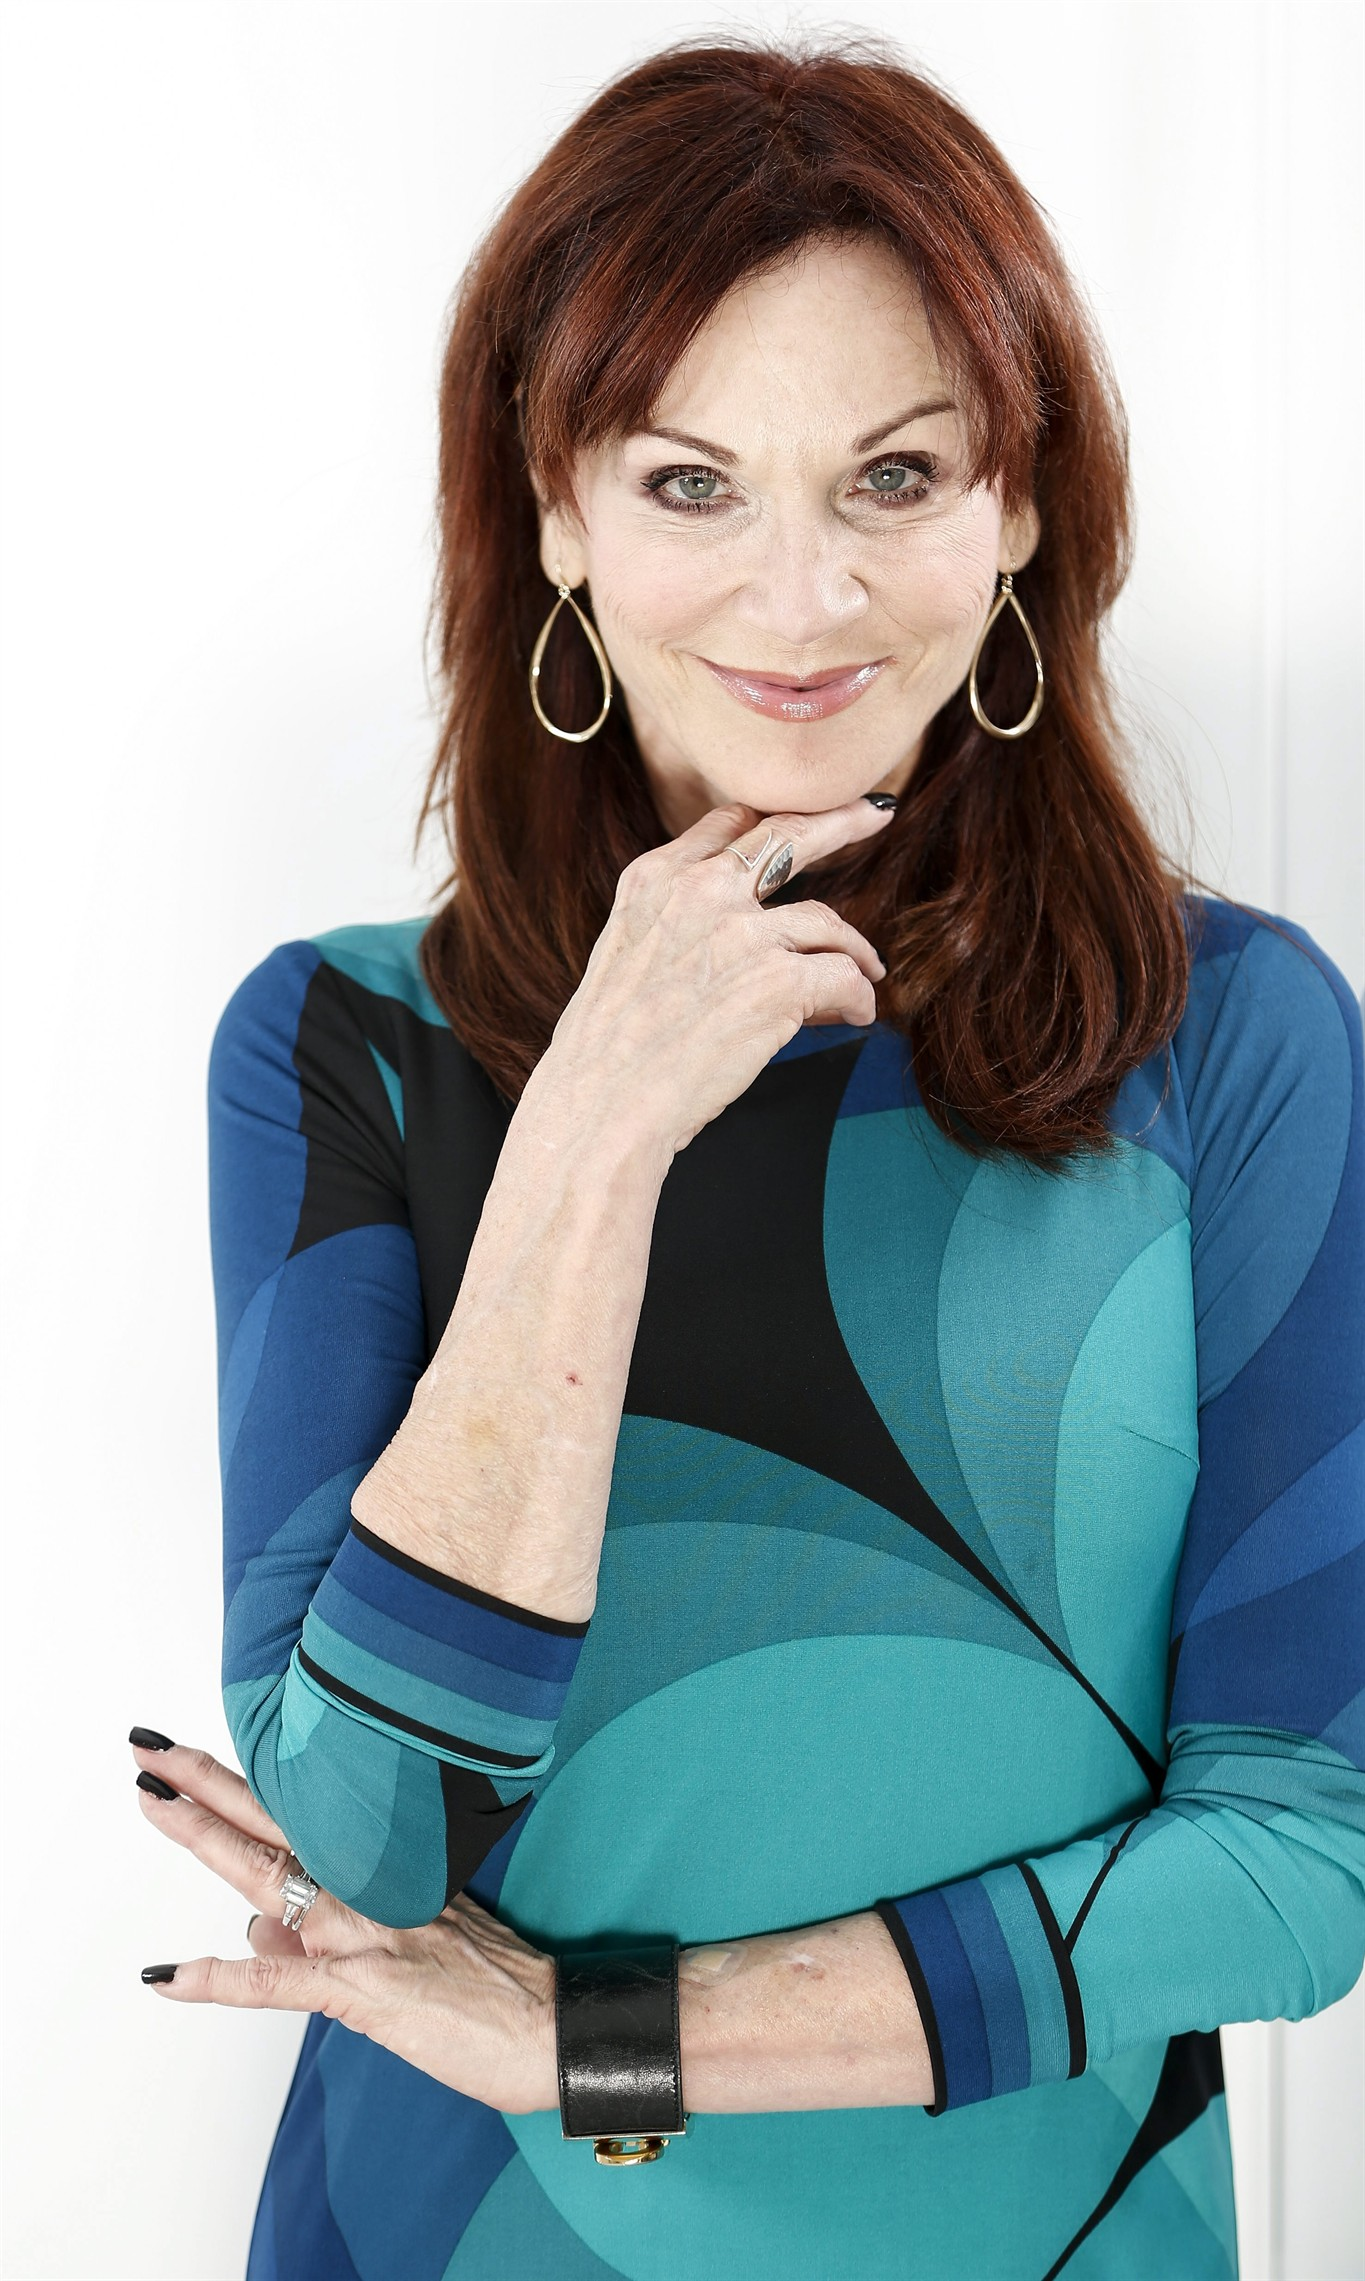 Marilu henner fakes you